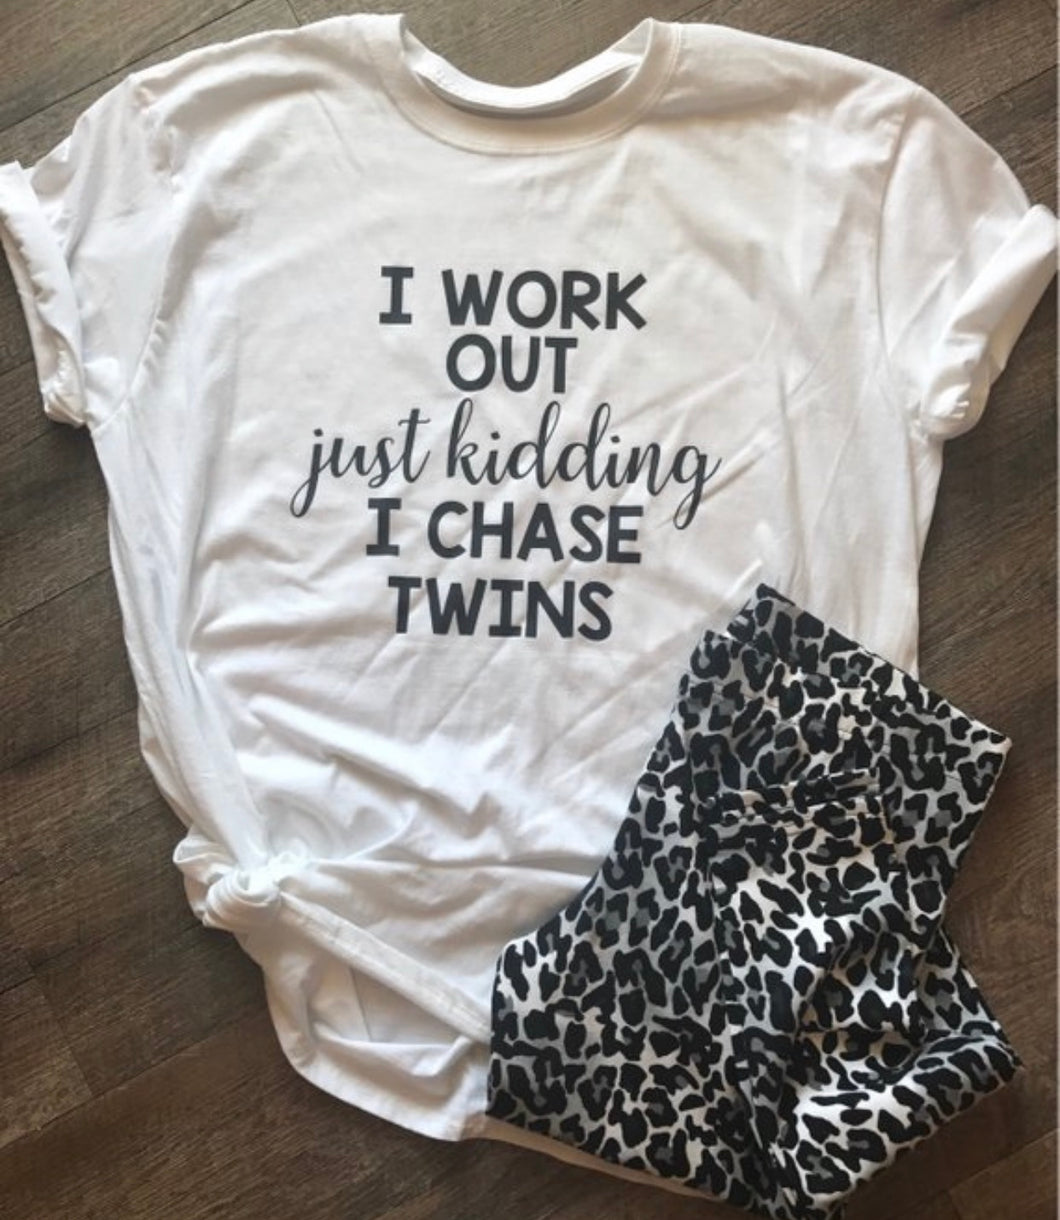 I work out just kidding I chase toddlers or twins . Funny graphic shirt. Momlife. Gift. - Mavictoria Designs Hot Press Express